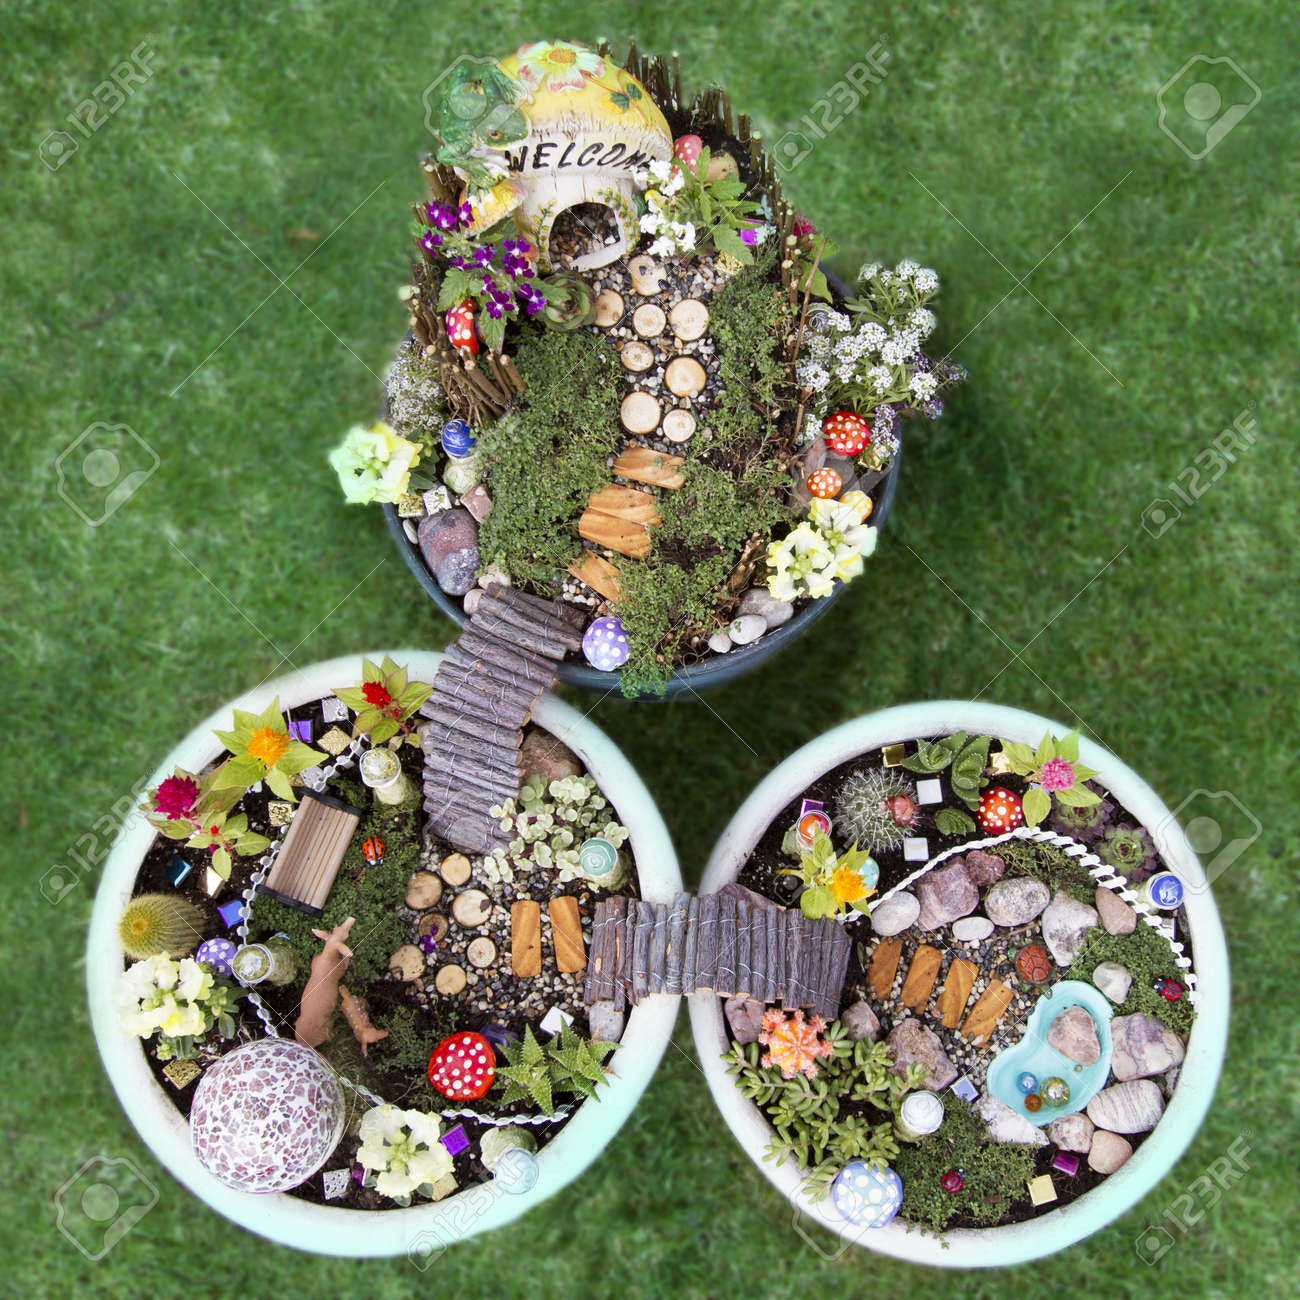 Birds Eye View Of Fairy Garden In A Flower Pot With Walking Path, Wooden  Bridges